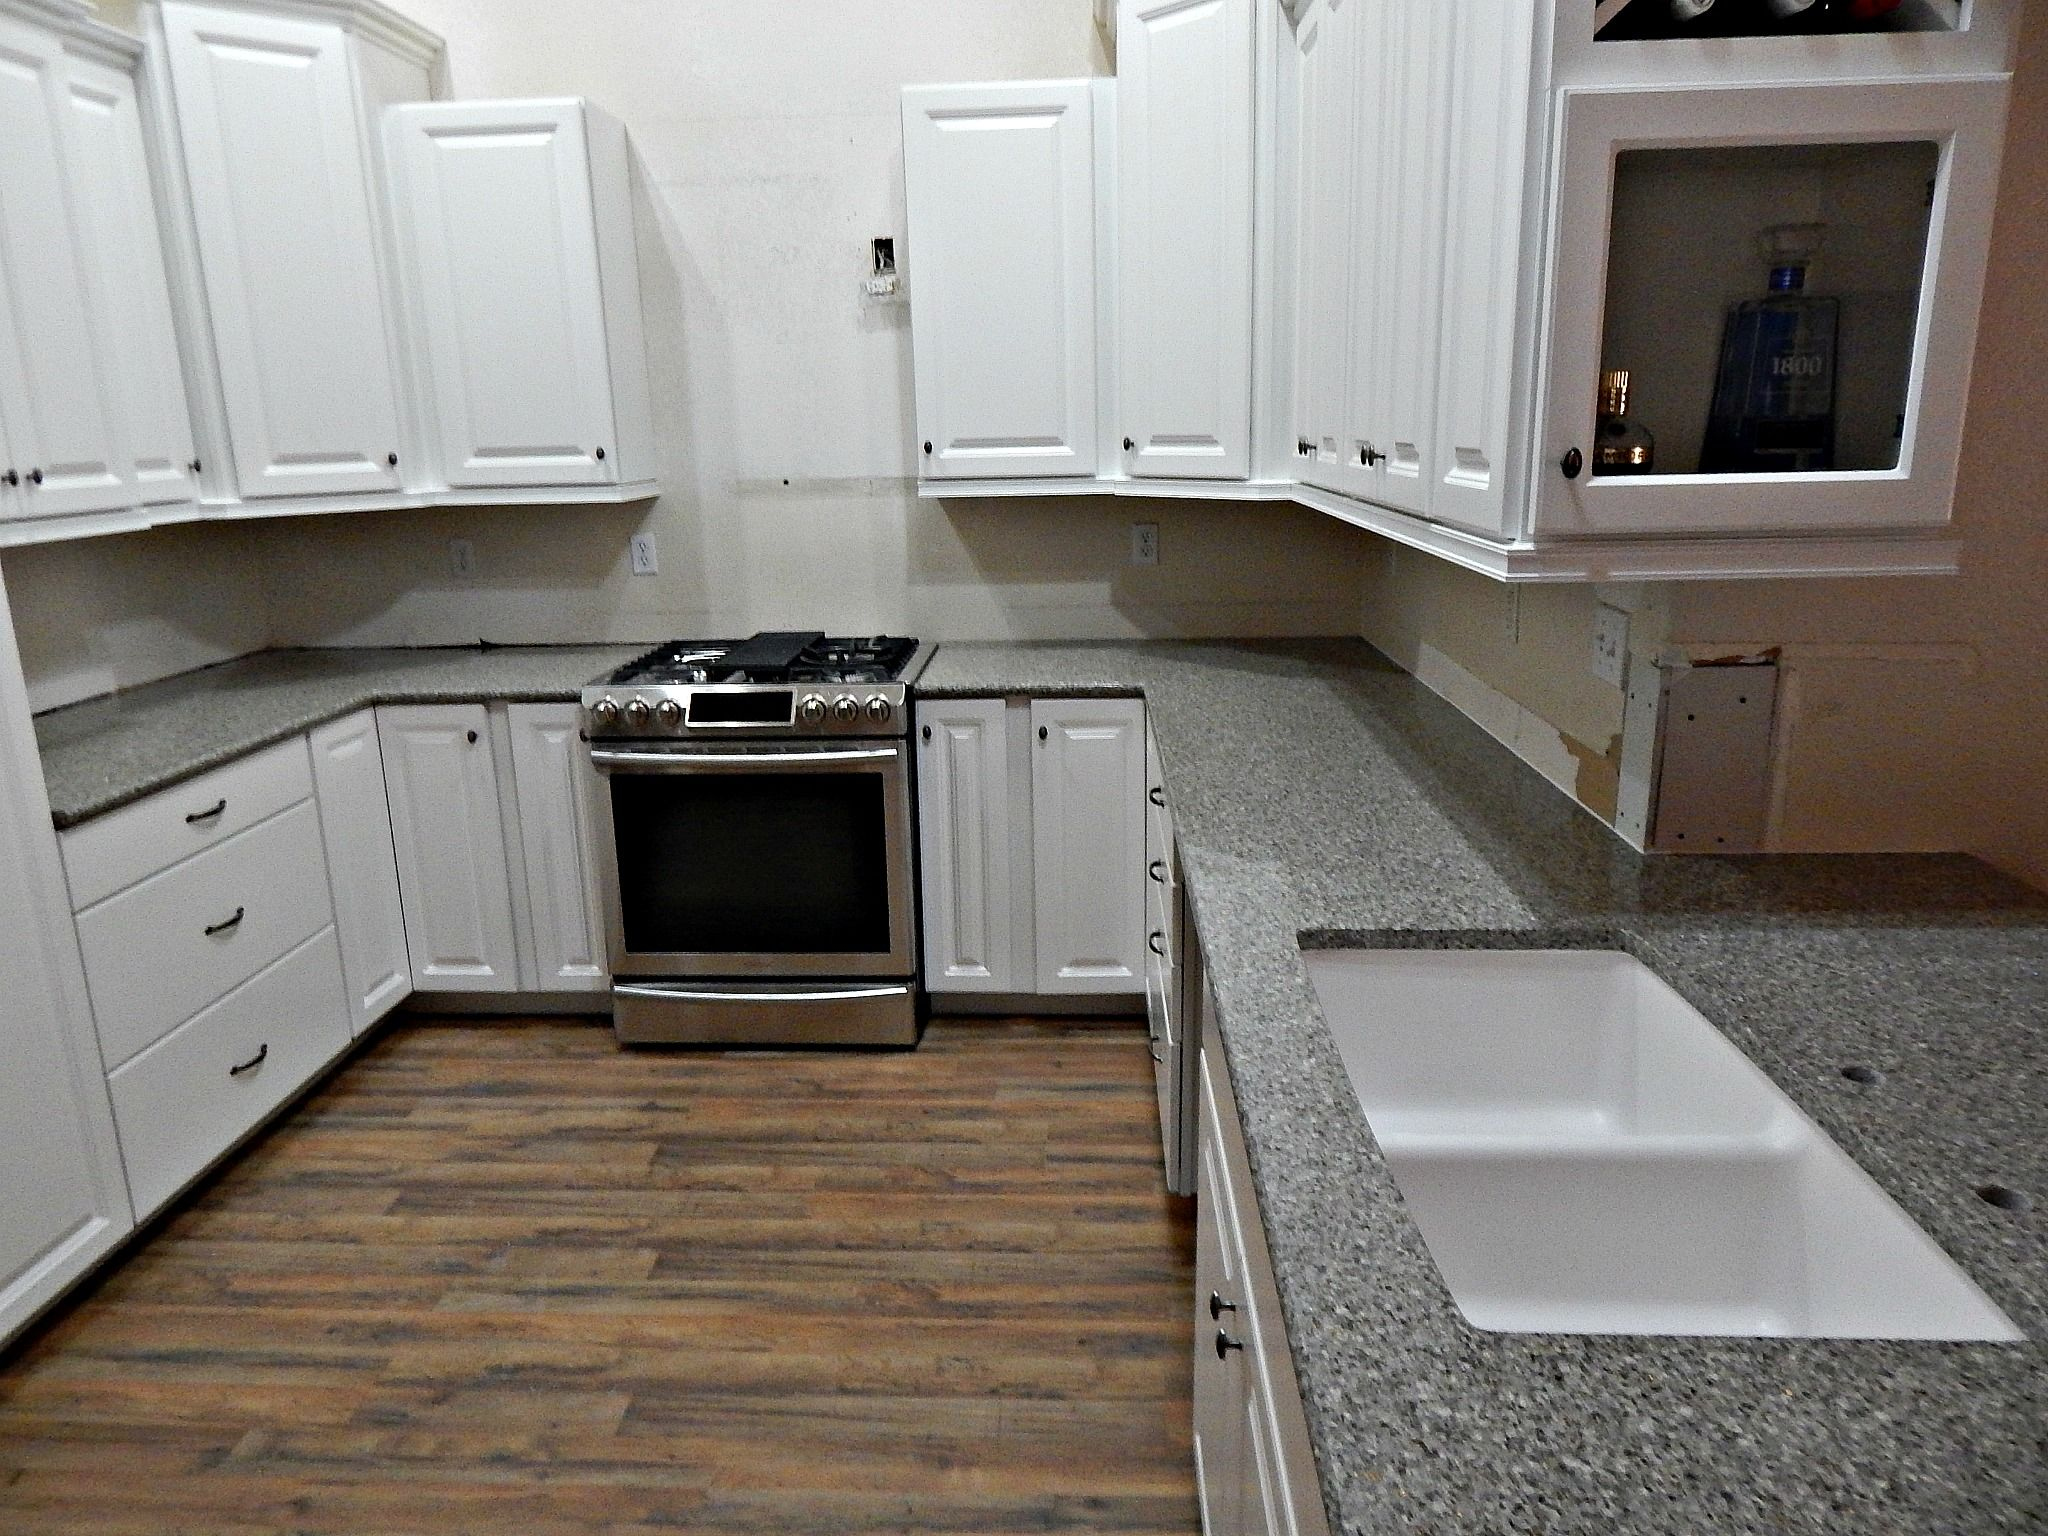 composite countertops kitchen walmart rugs imperial gray granite countertop remodel with half moon